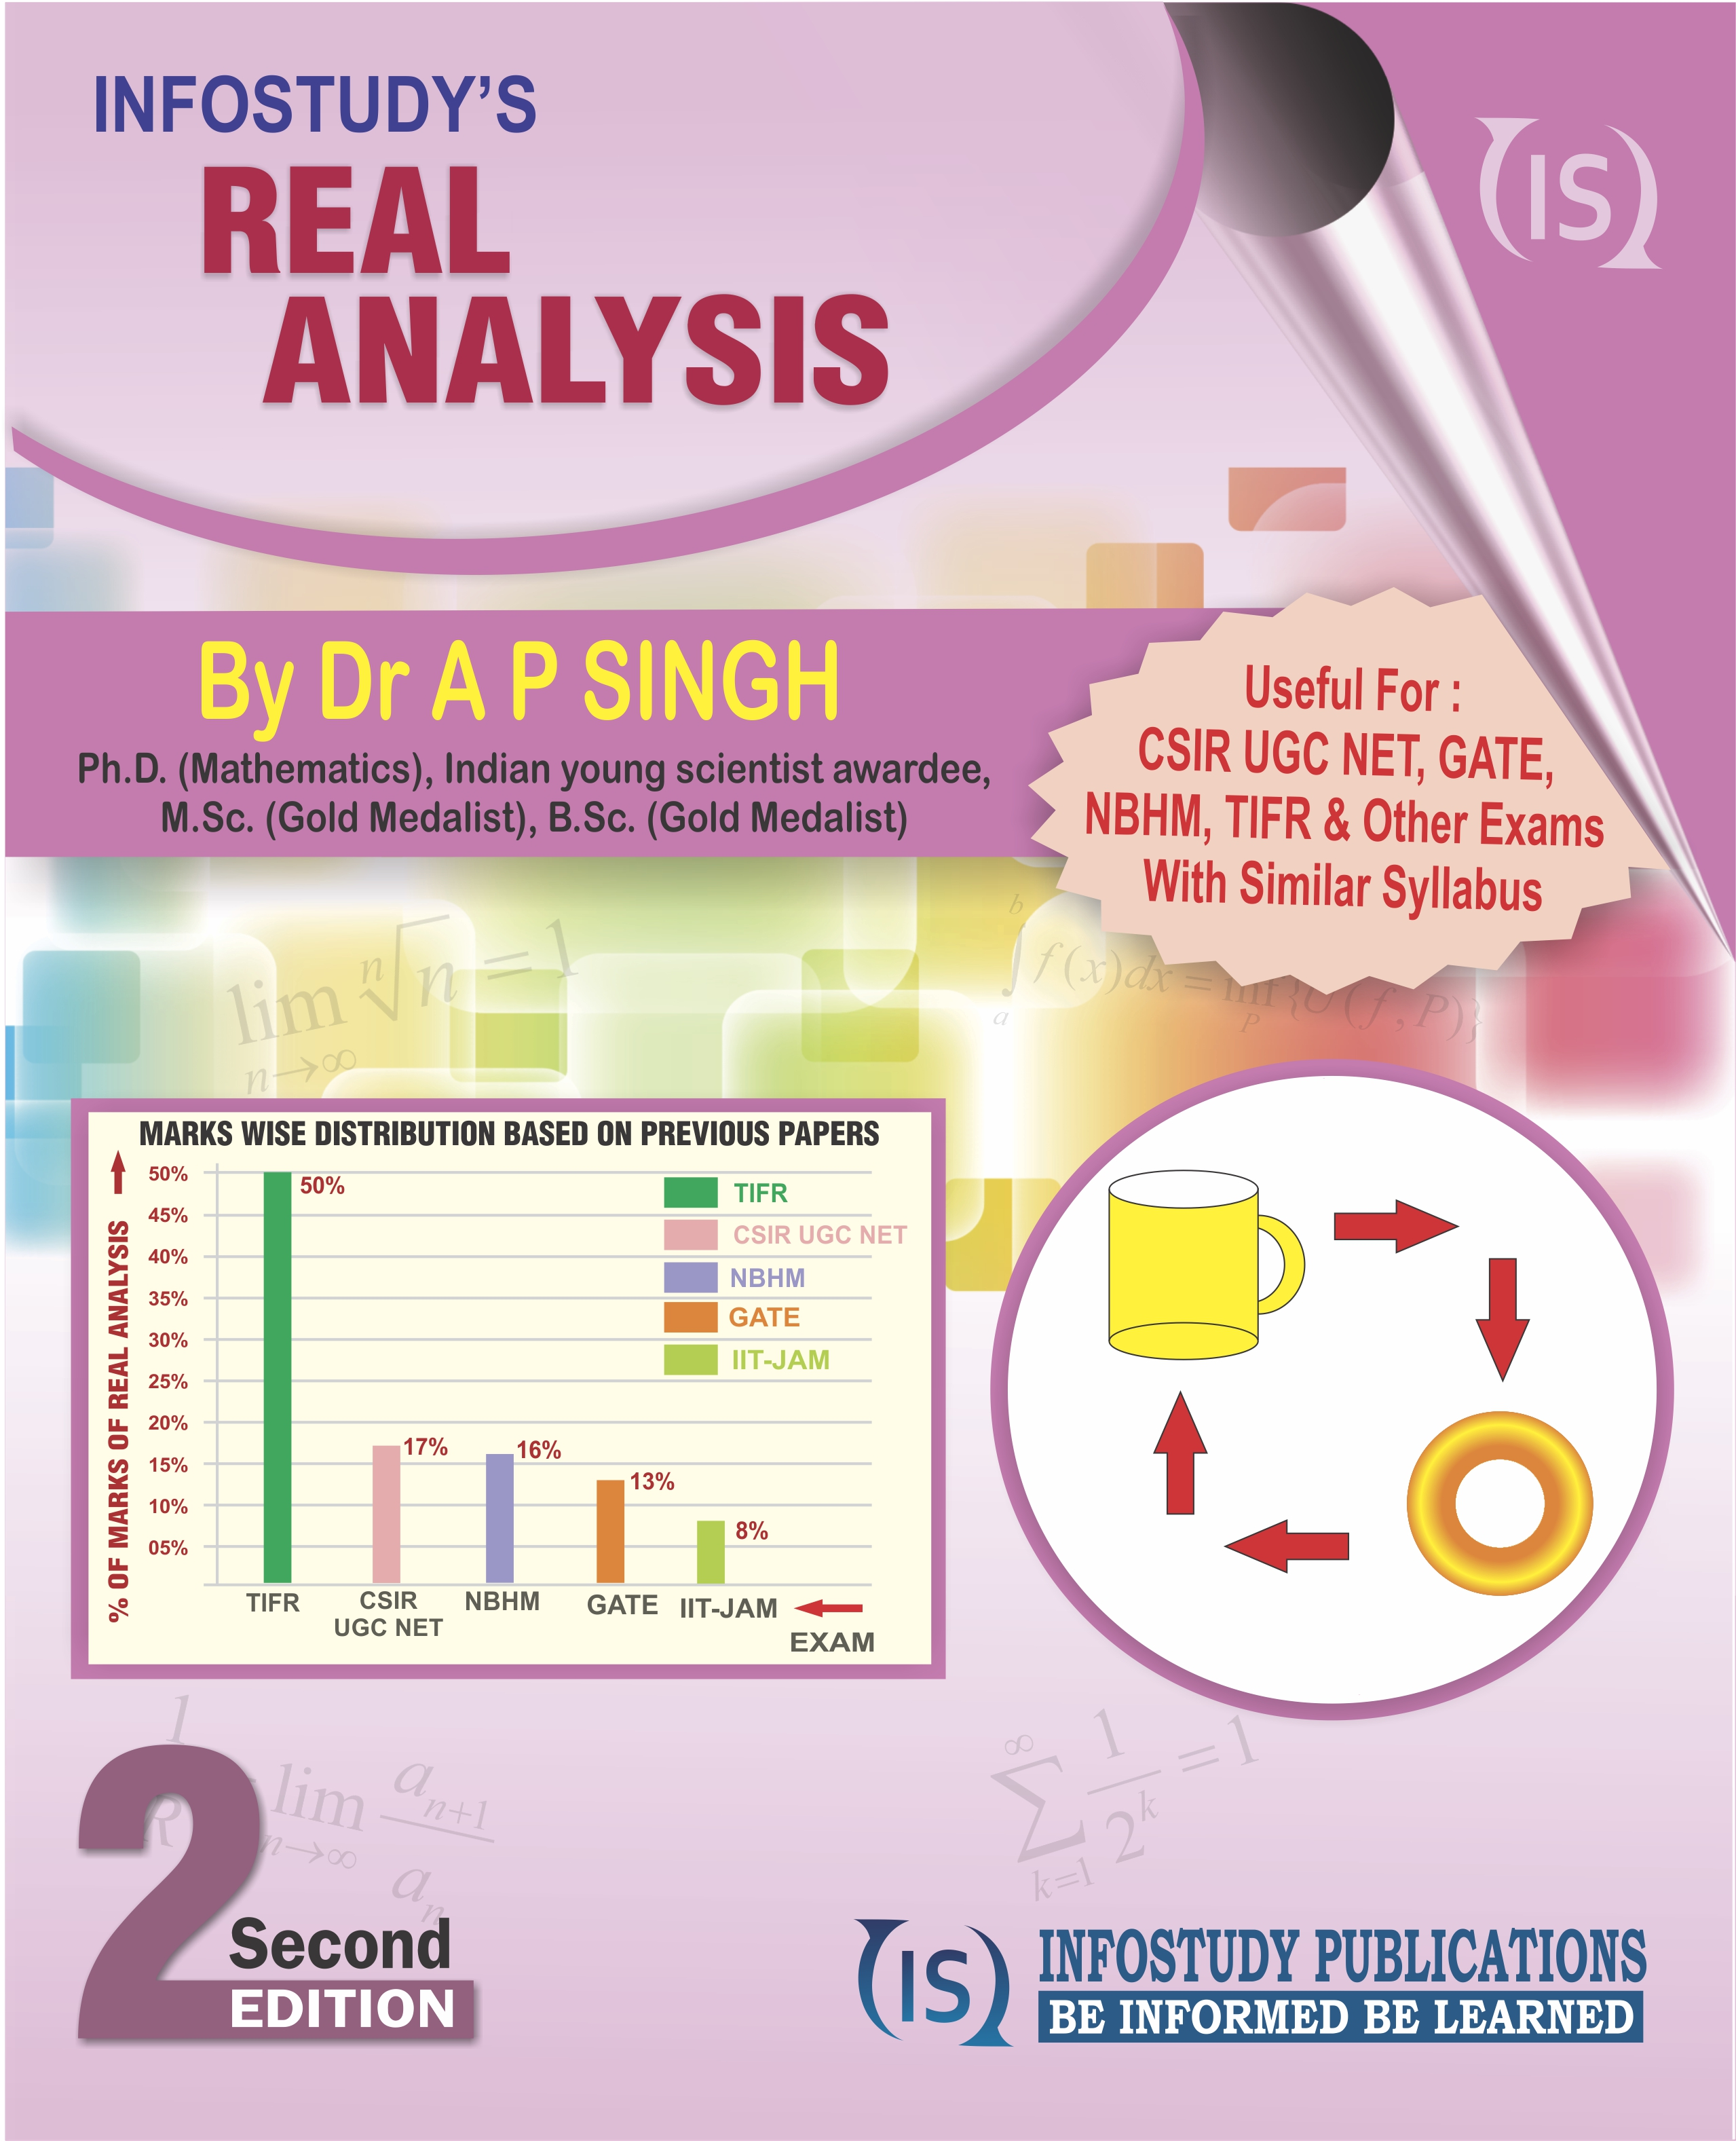 REAL ANALYSIS | Infostudy Publications